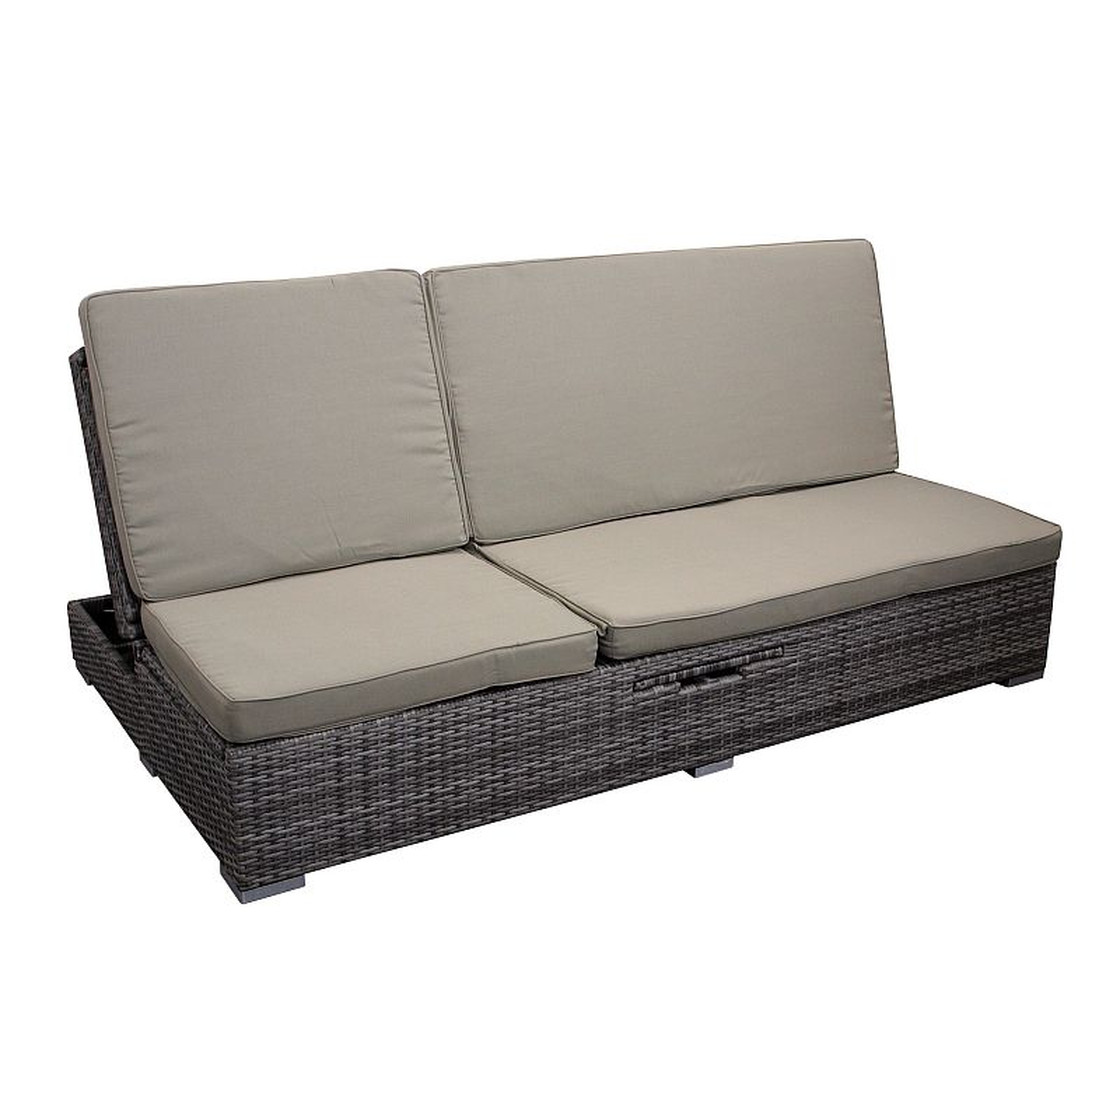 Full Size of Polyrattan Sofa Garden Set Tchibo Lounge Outdoor Ausziehbar Couch Grau Gartensofa 2 Sitzer 2 Sitzer Balkon Rattan Funktions Doppelliege Xxl Hussen Kinderzimmer Sofa Polyrattan Sofa